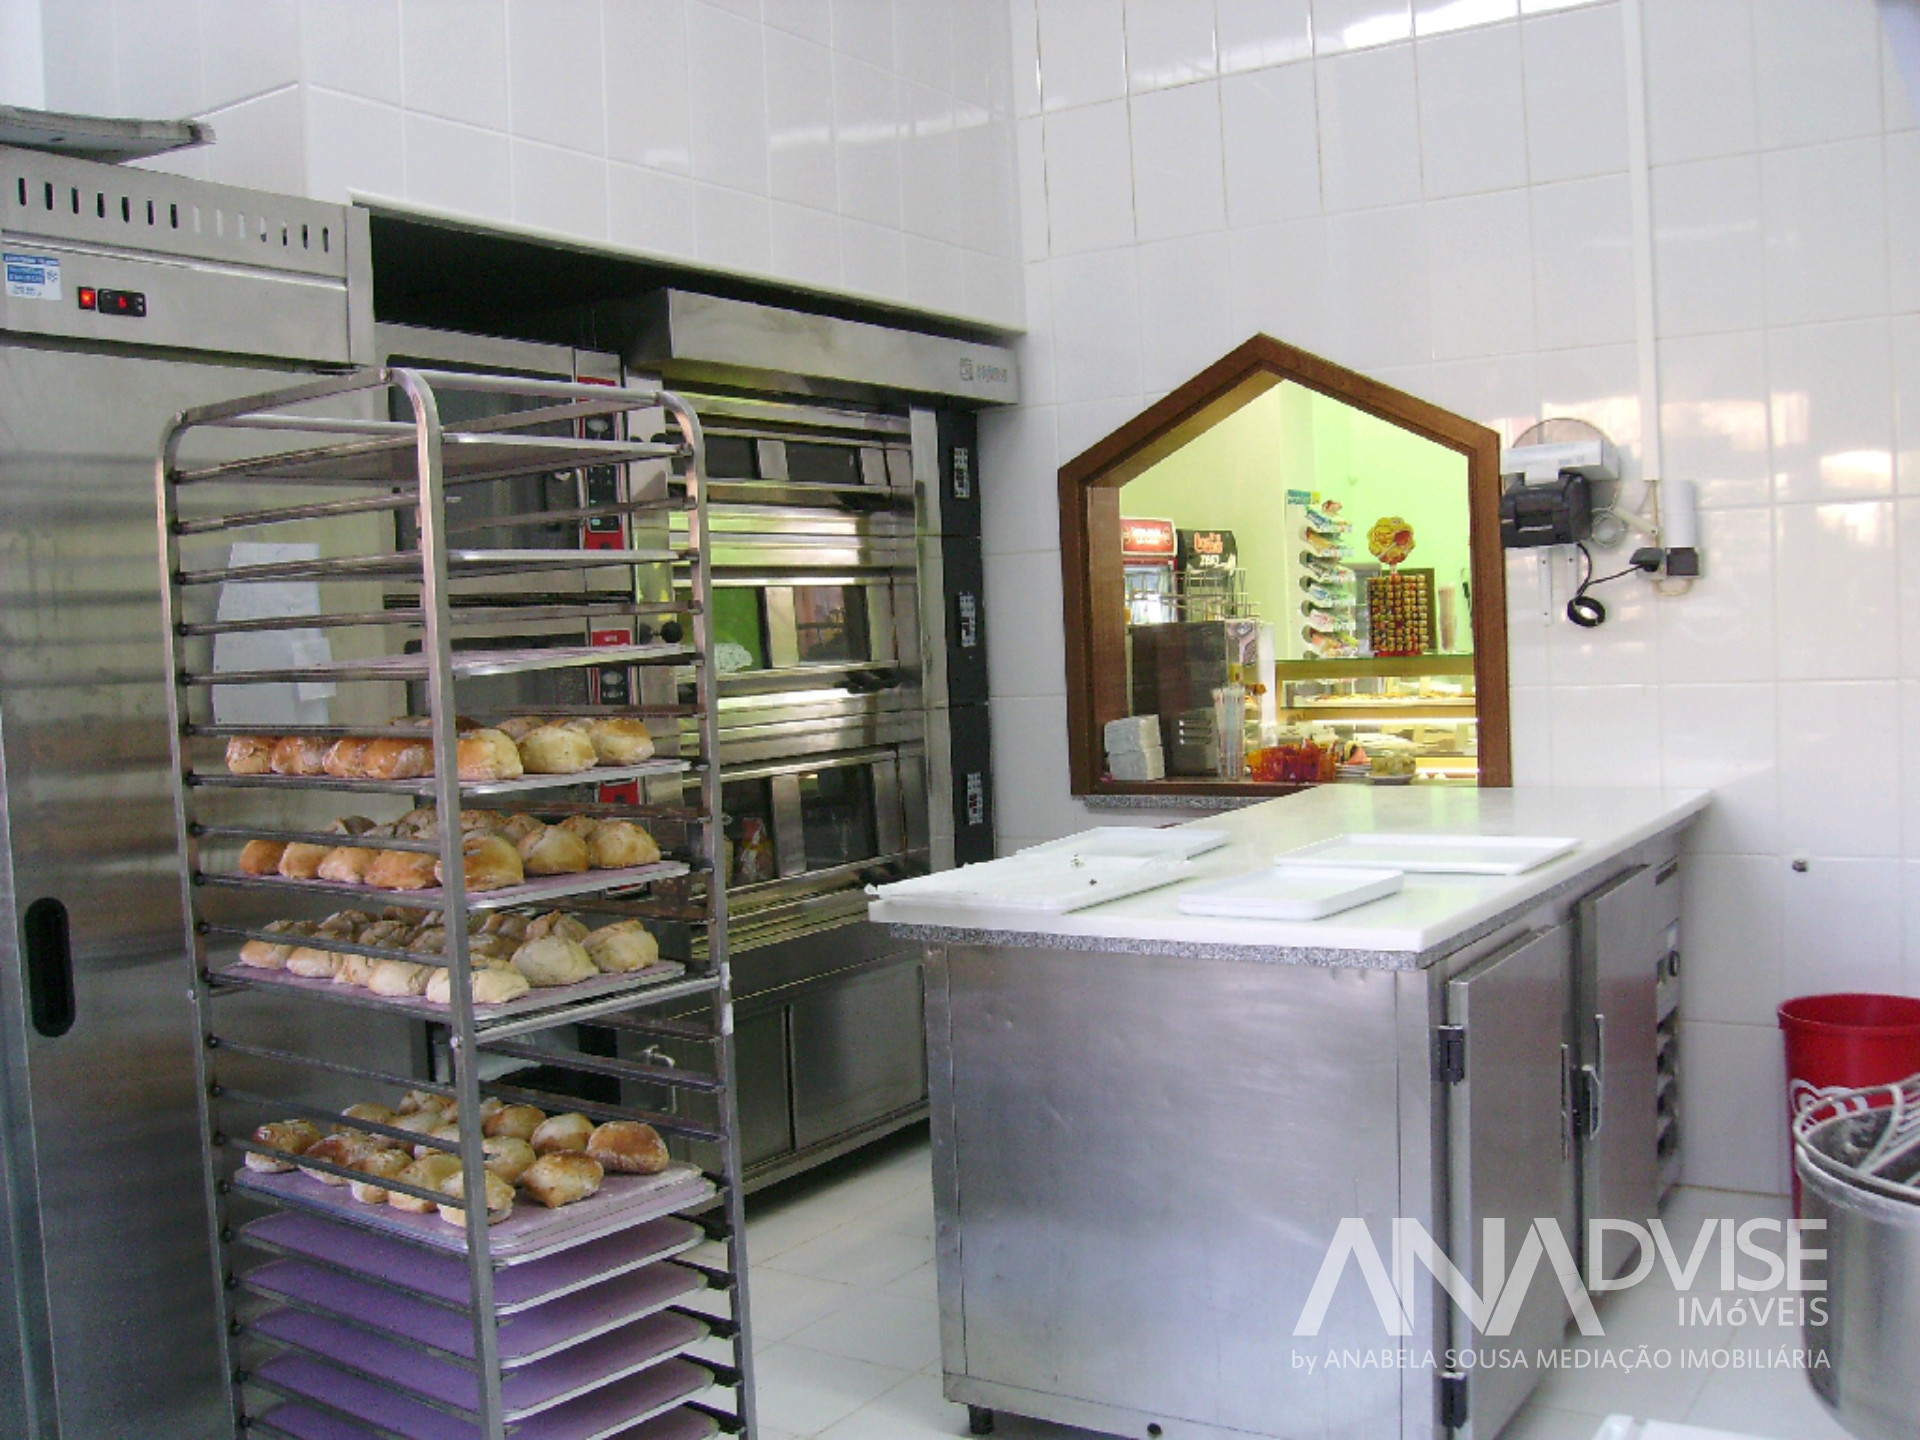 Bakery / Confectionery